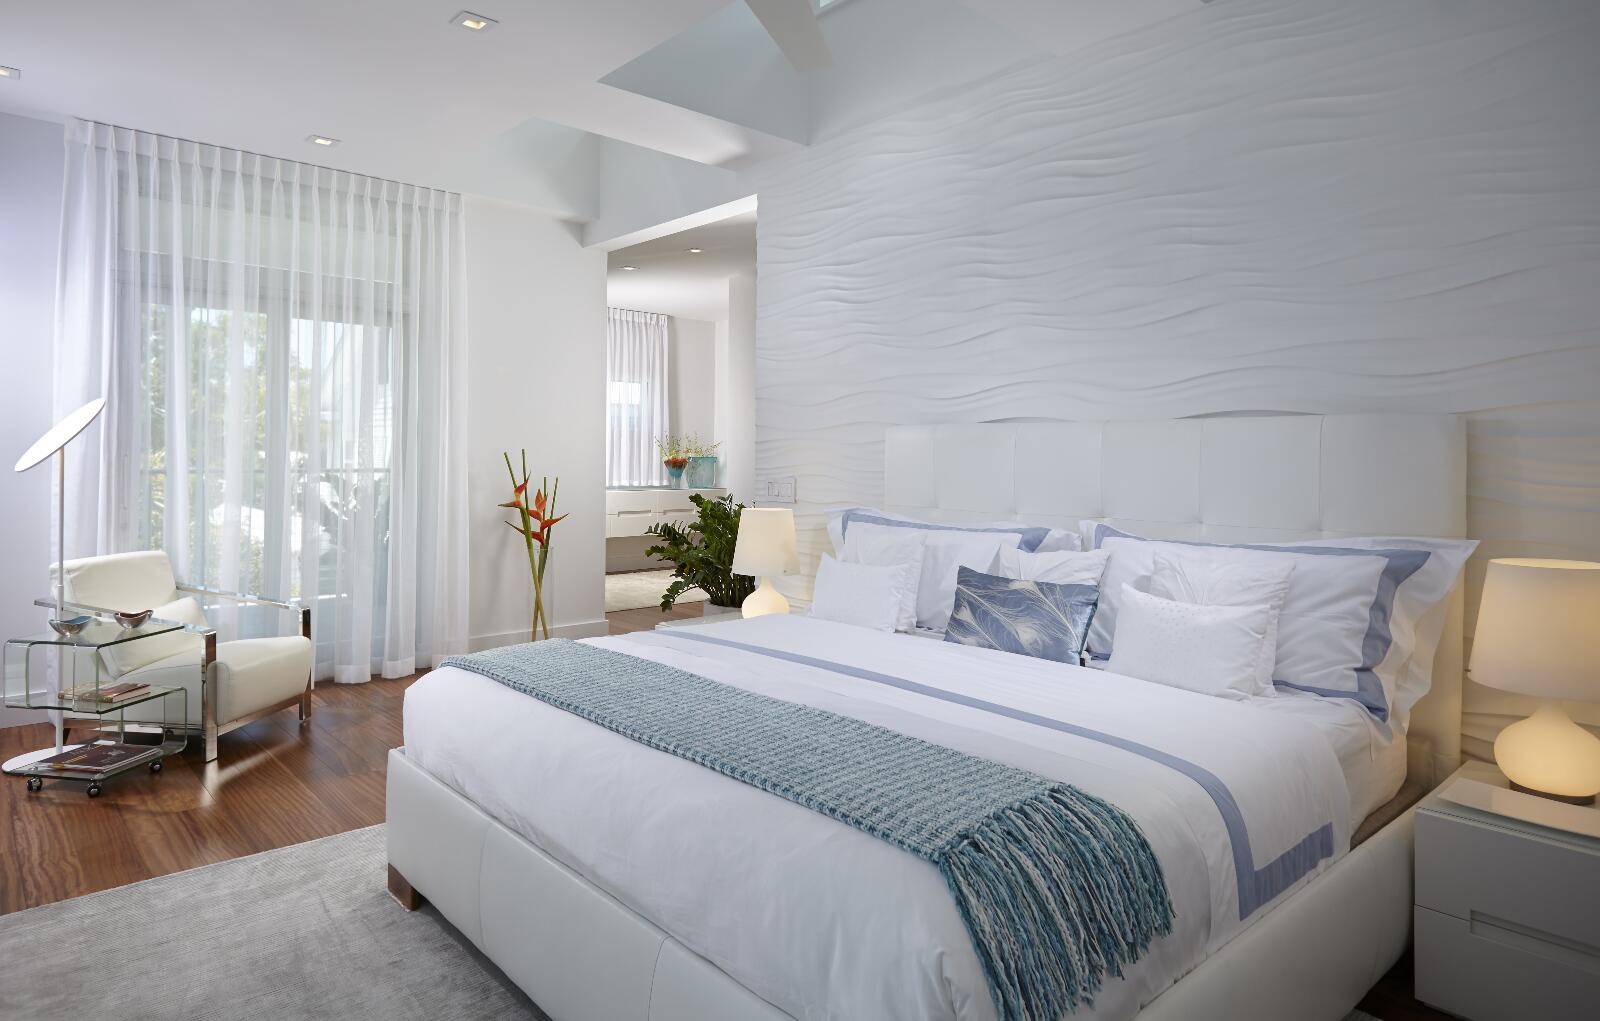 Bedroom interior designers miami - Designers bedrooms ...